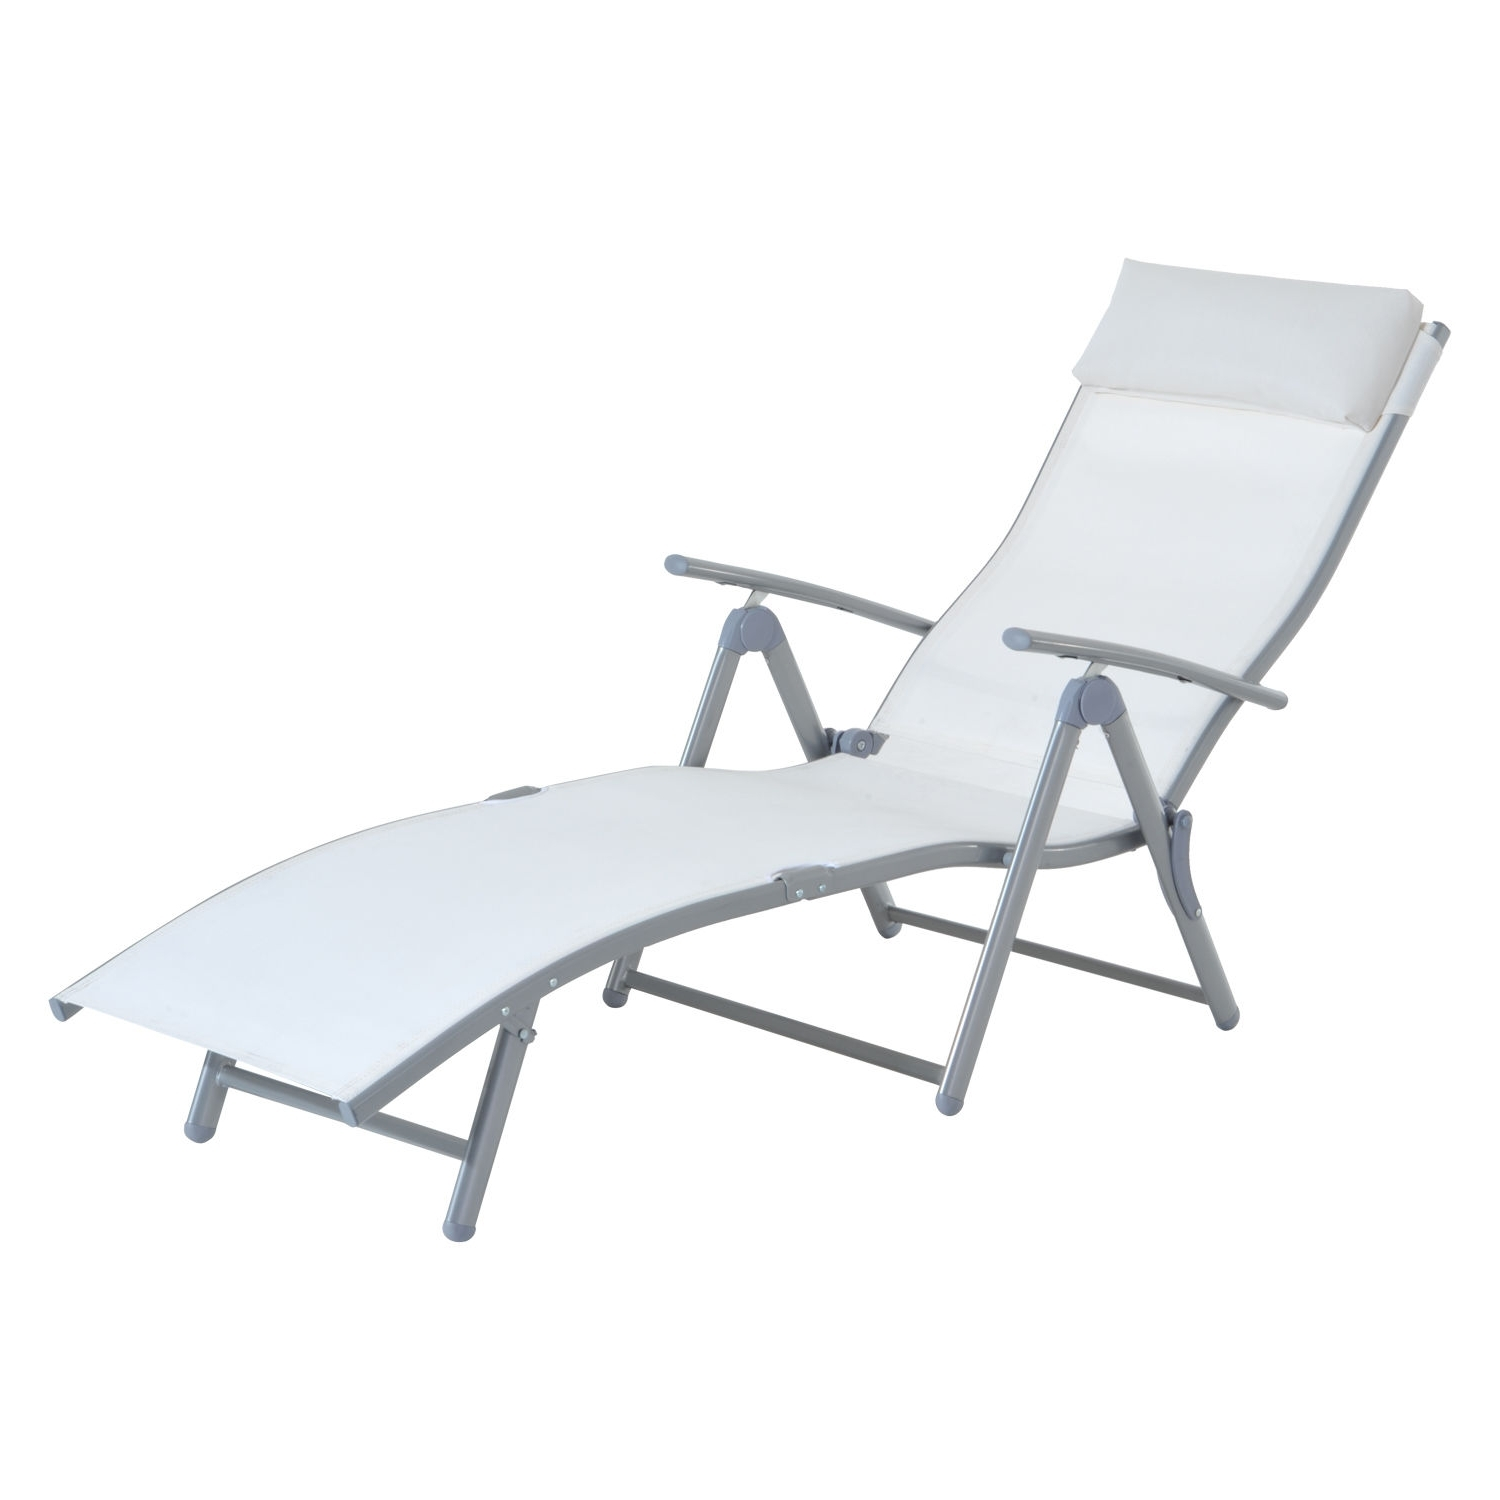 Outdoor : Lowes Chaise Lounge Indoor Outdoor Chaise Lounge Chairs For Most Recently Released Chaise Lounge Strap Chairs (View 12 of 15)